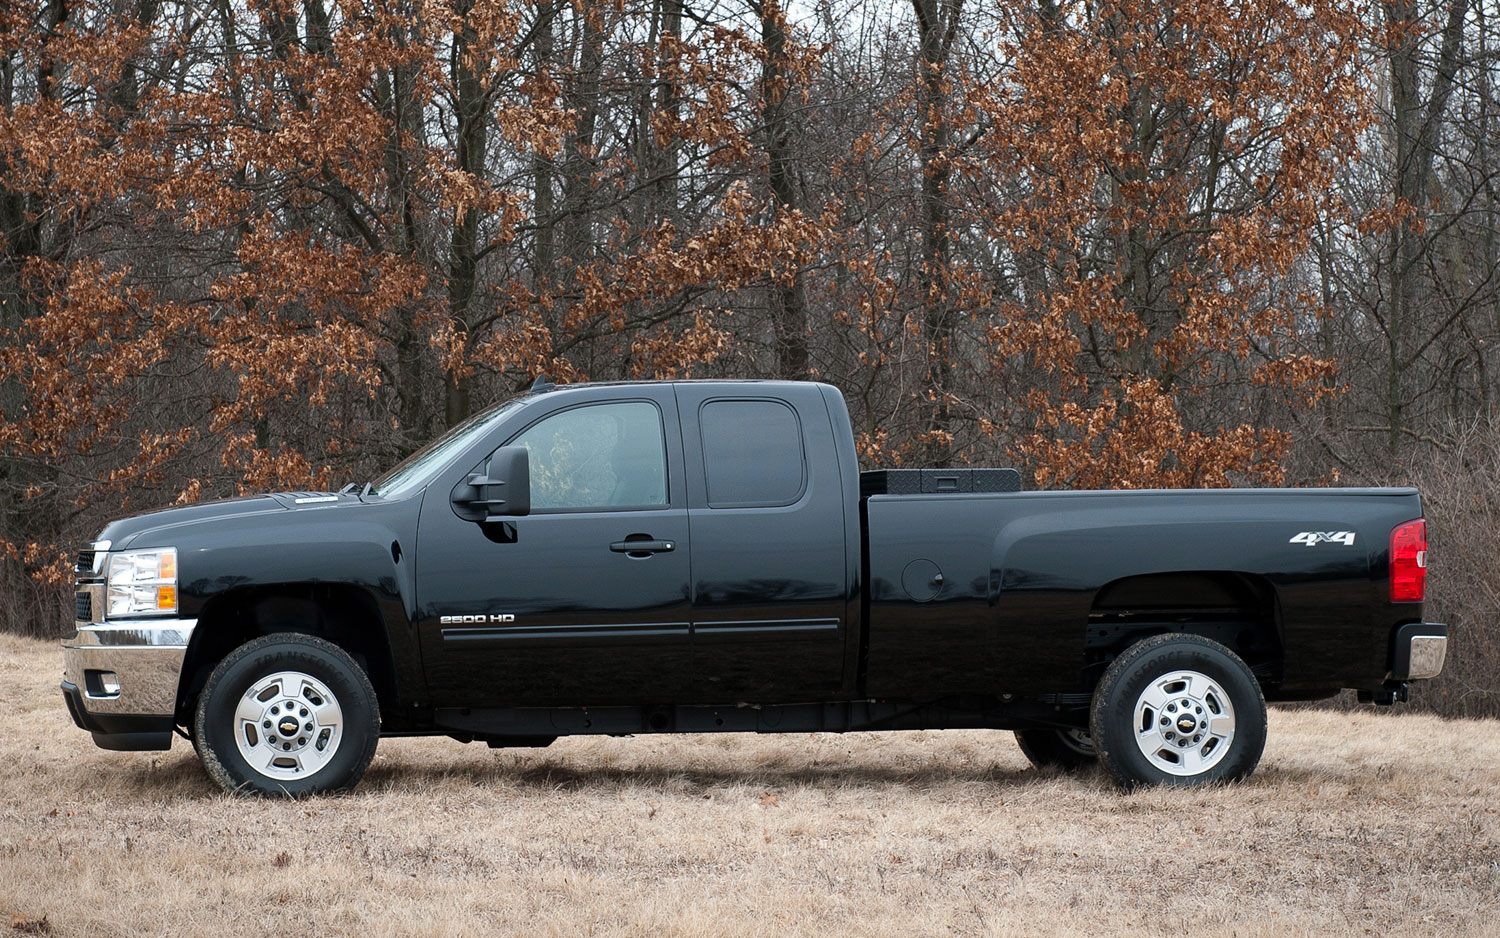 2013 Chevy Silverado Gmc Sierra Hd Gain Bi Fuel Cng Option Fender Highway One Stratocaster Wiring Diagram Show More